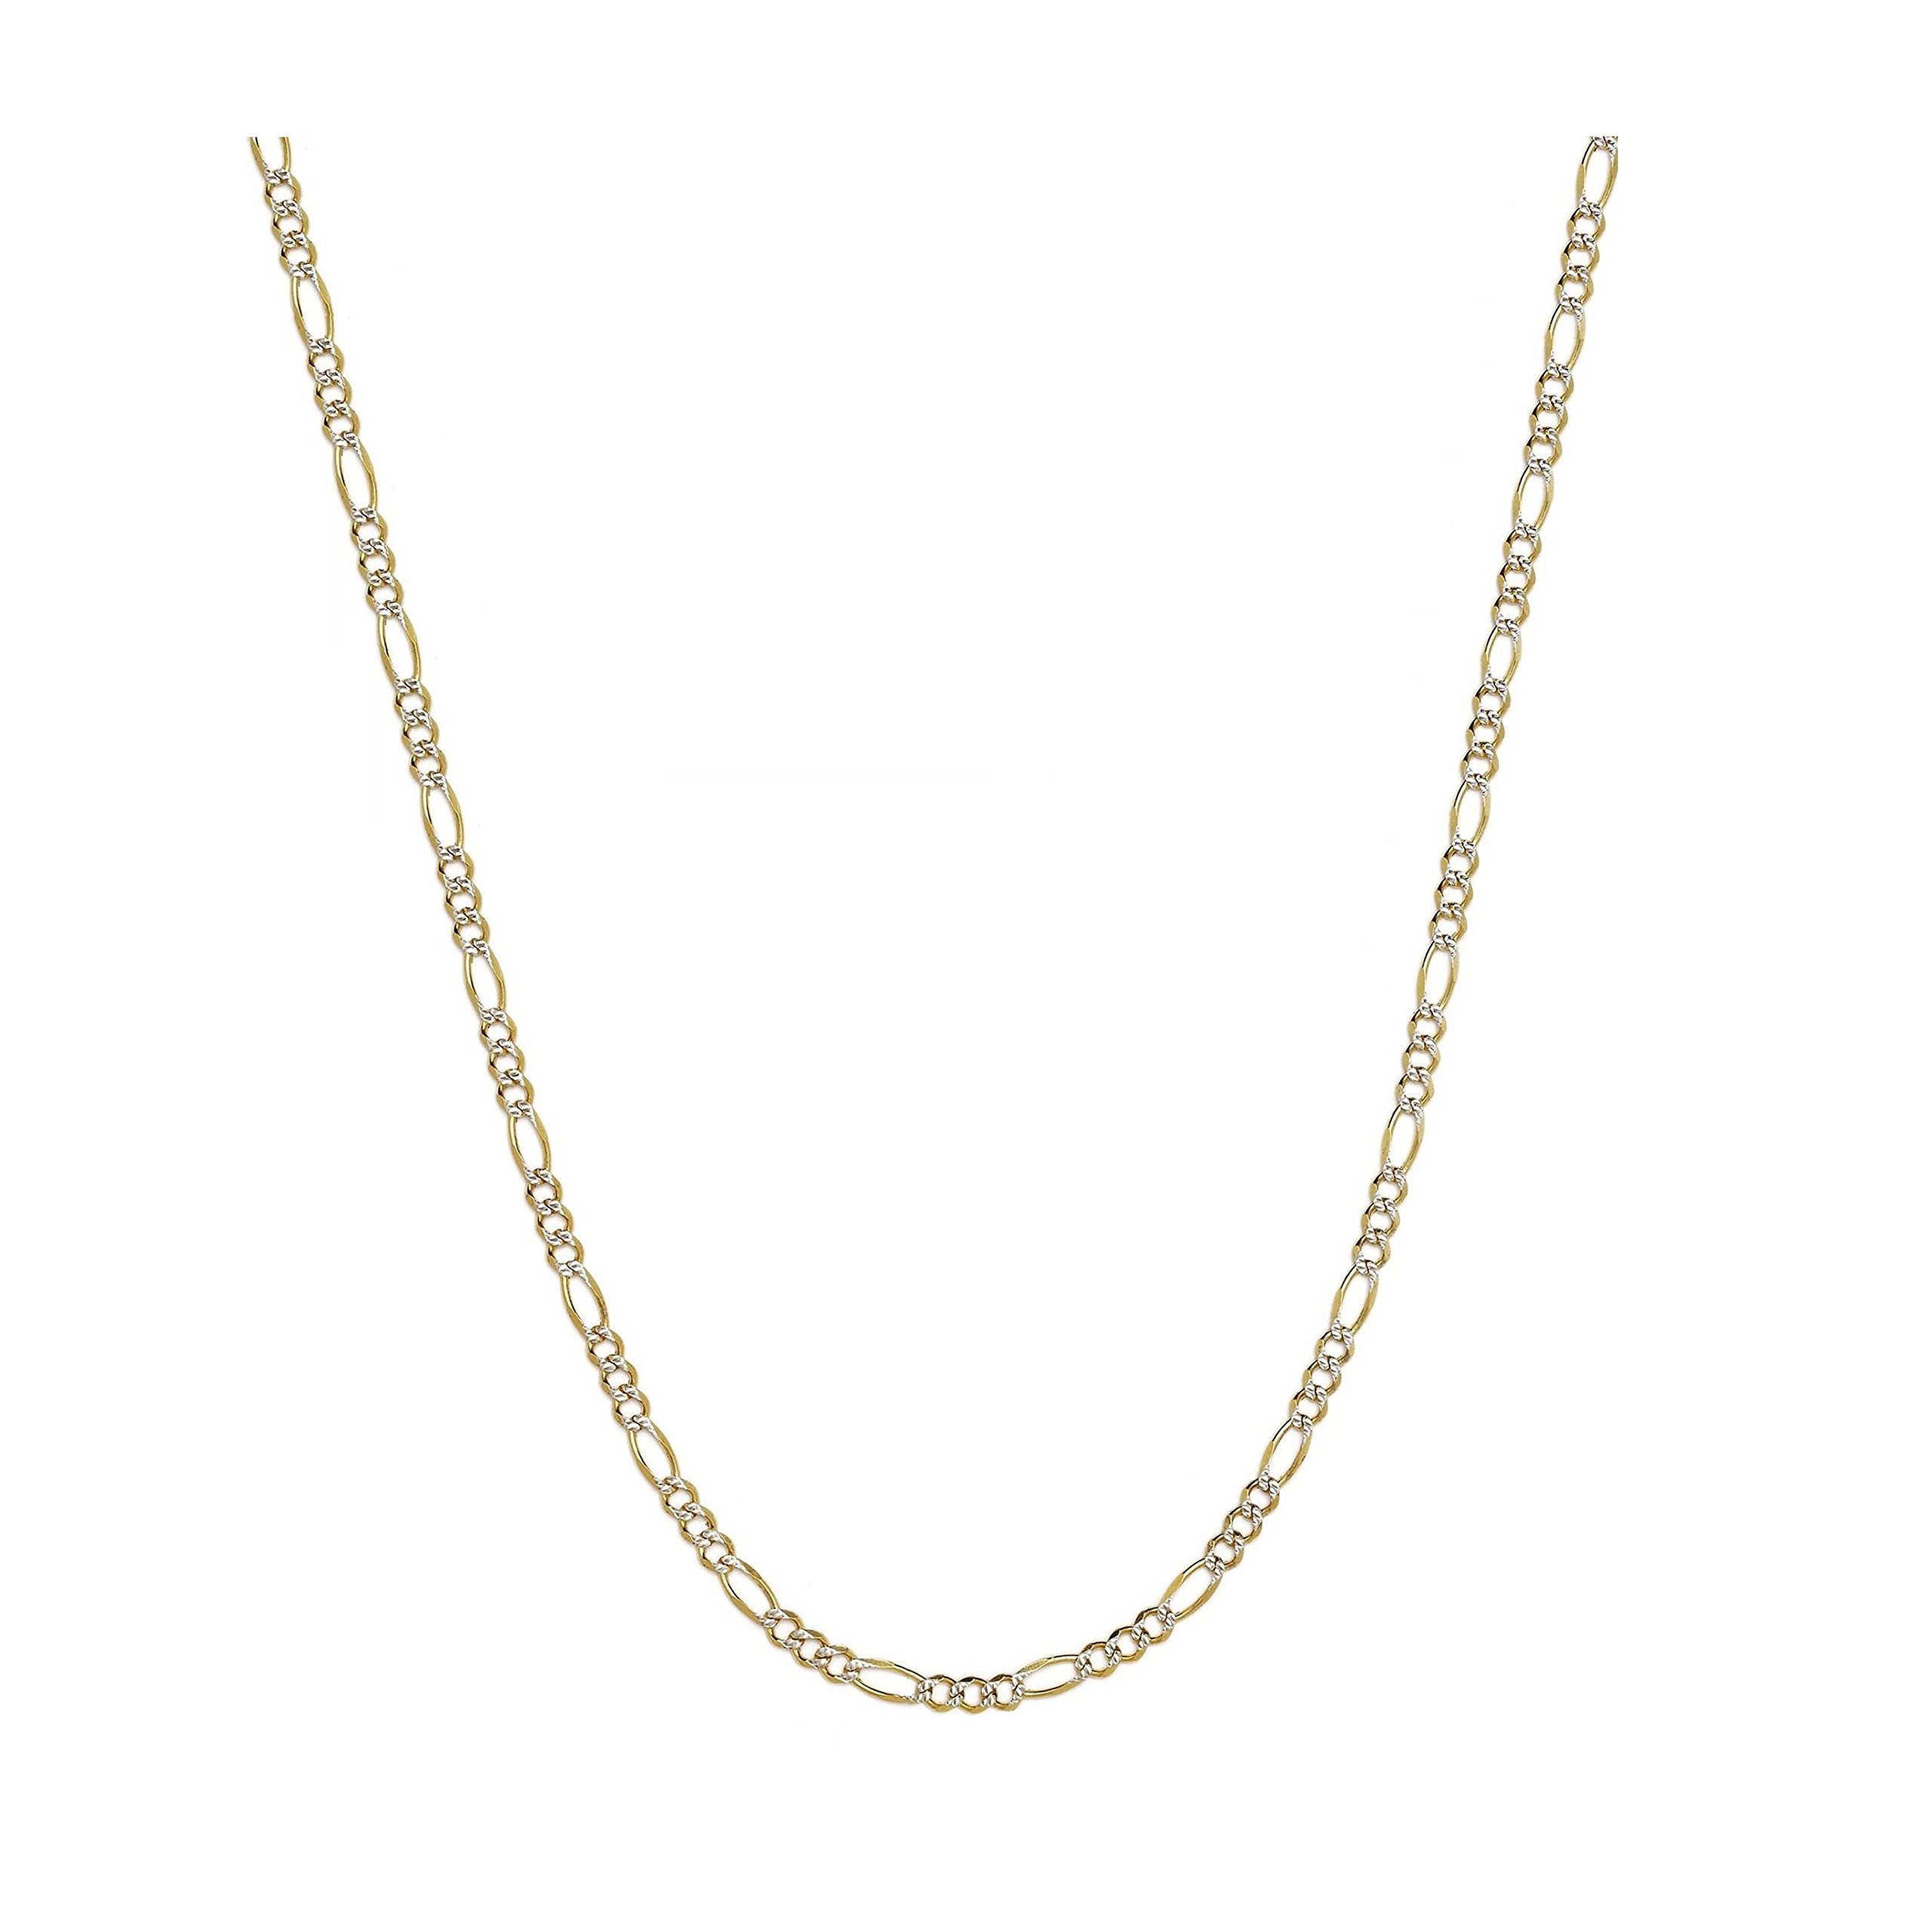 14K Two-Tone Yellow and White Gold 1.5mm Solid Figaro Pave Chain Necklace- 20''